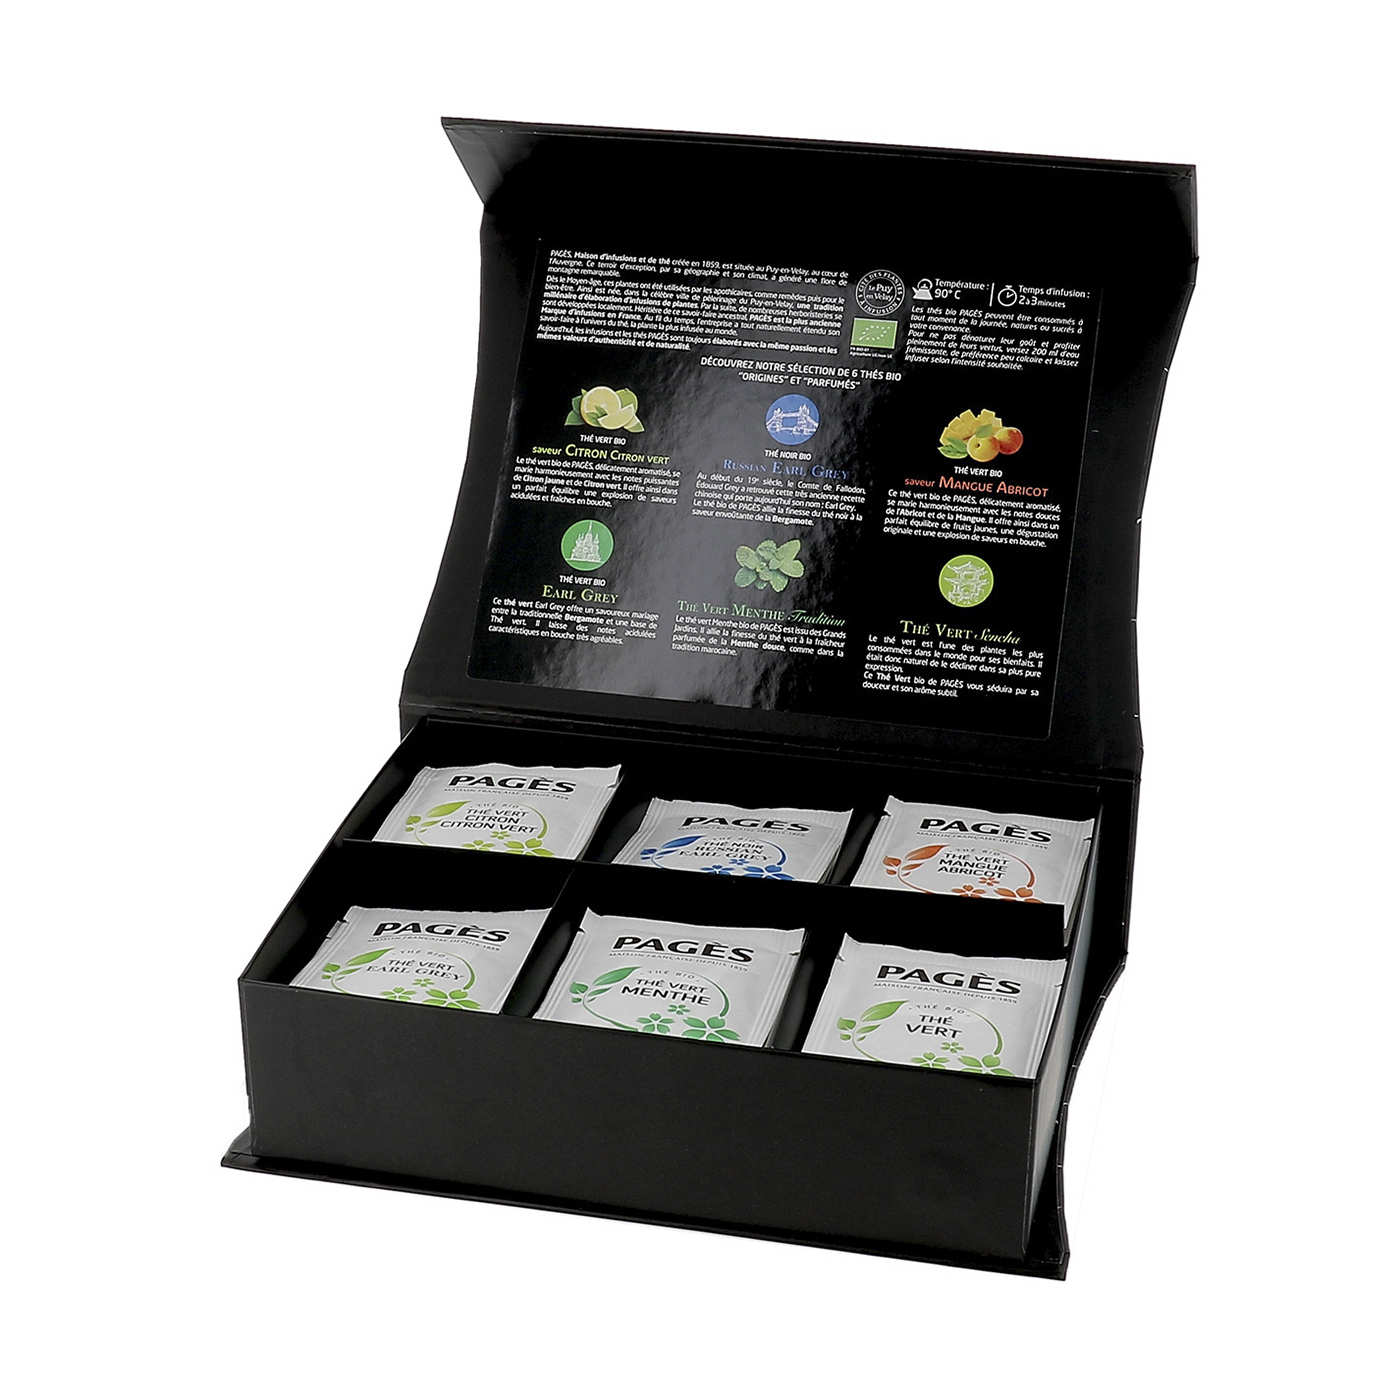 Wooden Case of Organic Teas by Pagès